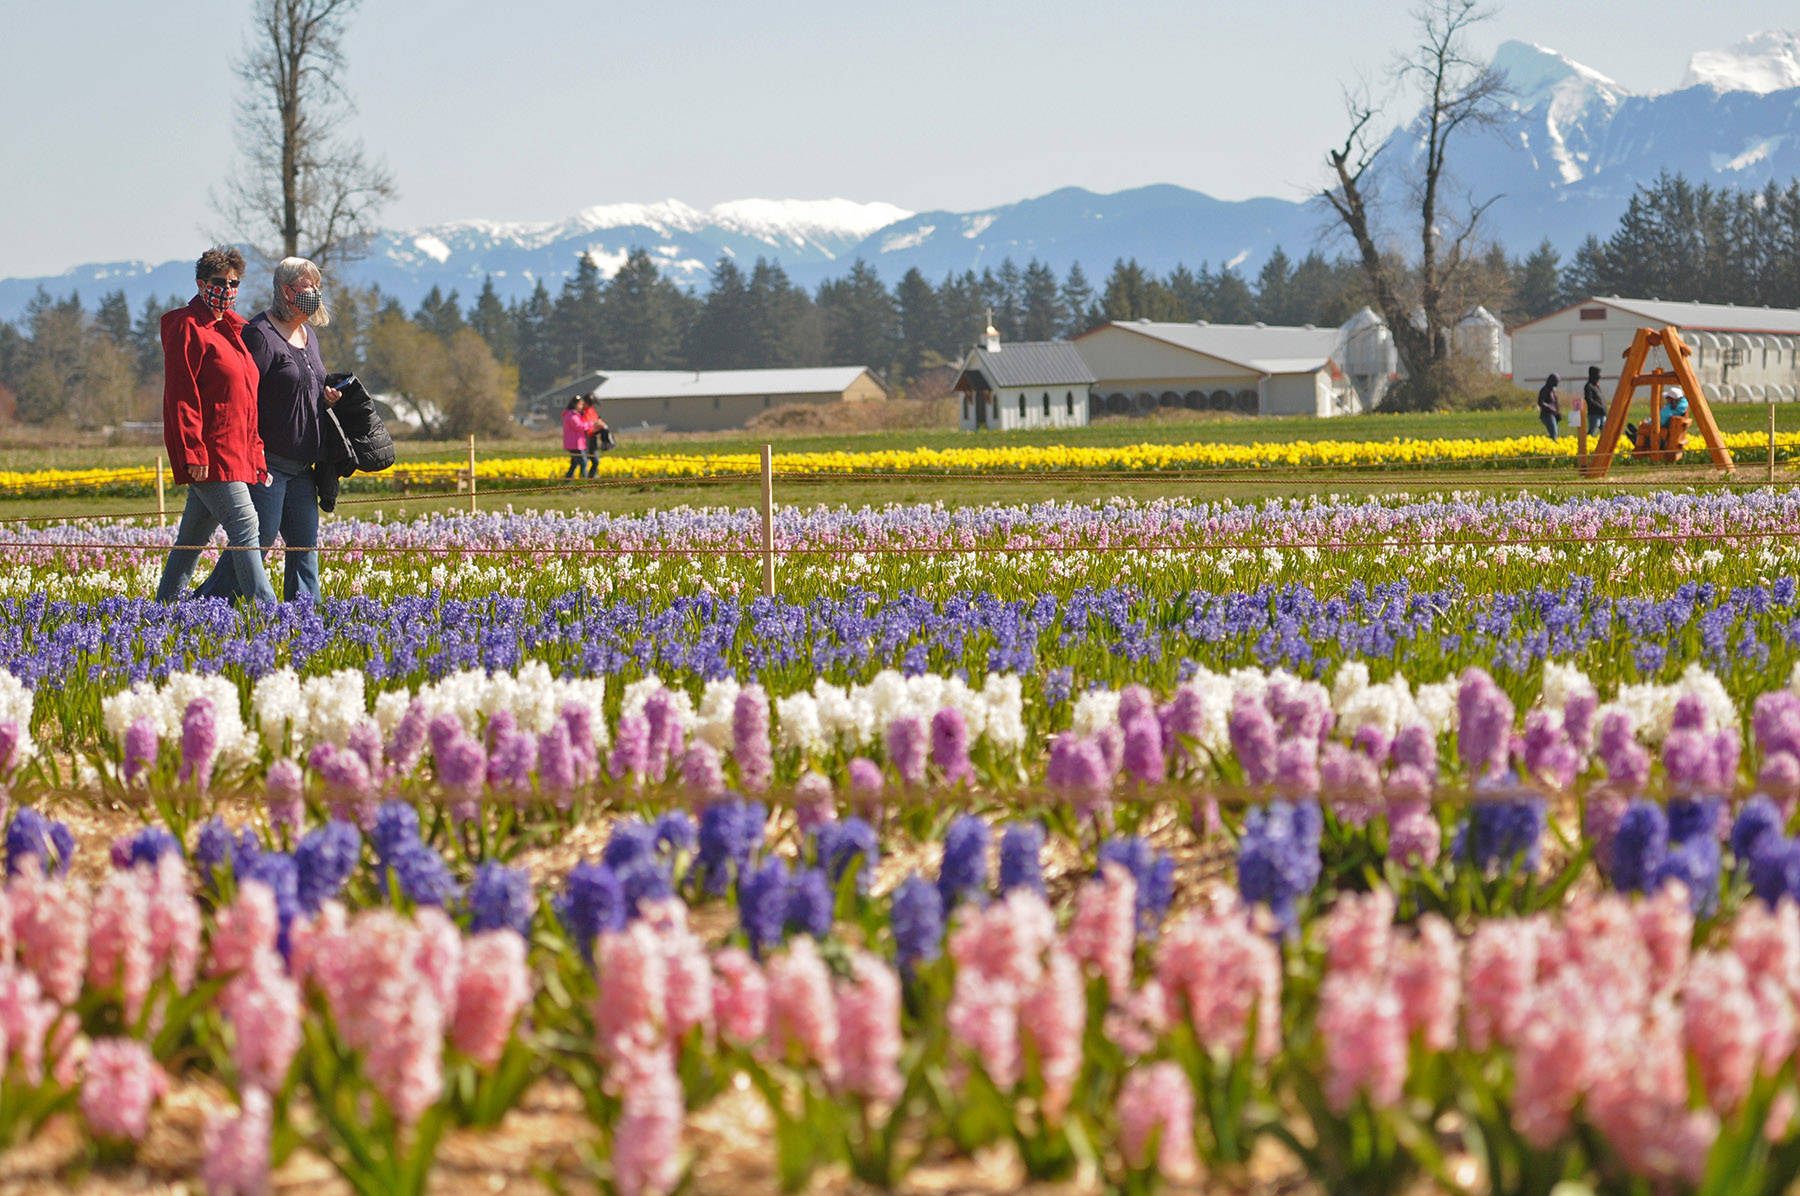 People take in the fields of hyacinths and daffodils at the Chilliwack Tulips attraction on April 13, 2021. (Jenna Hauck/ Chilliwack Progress)